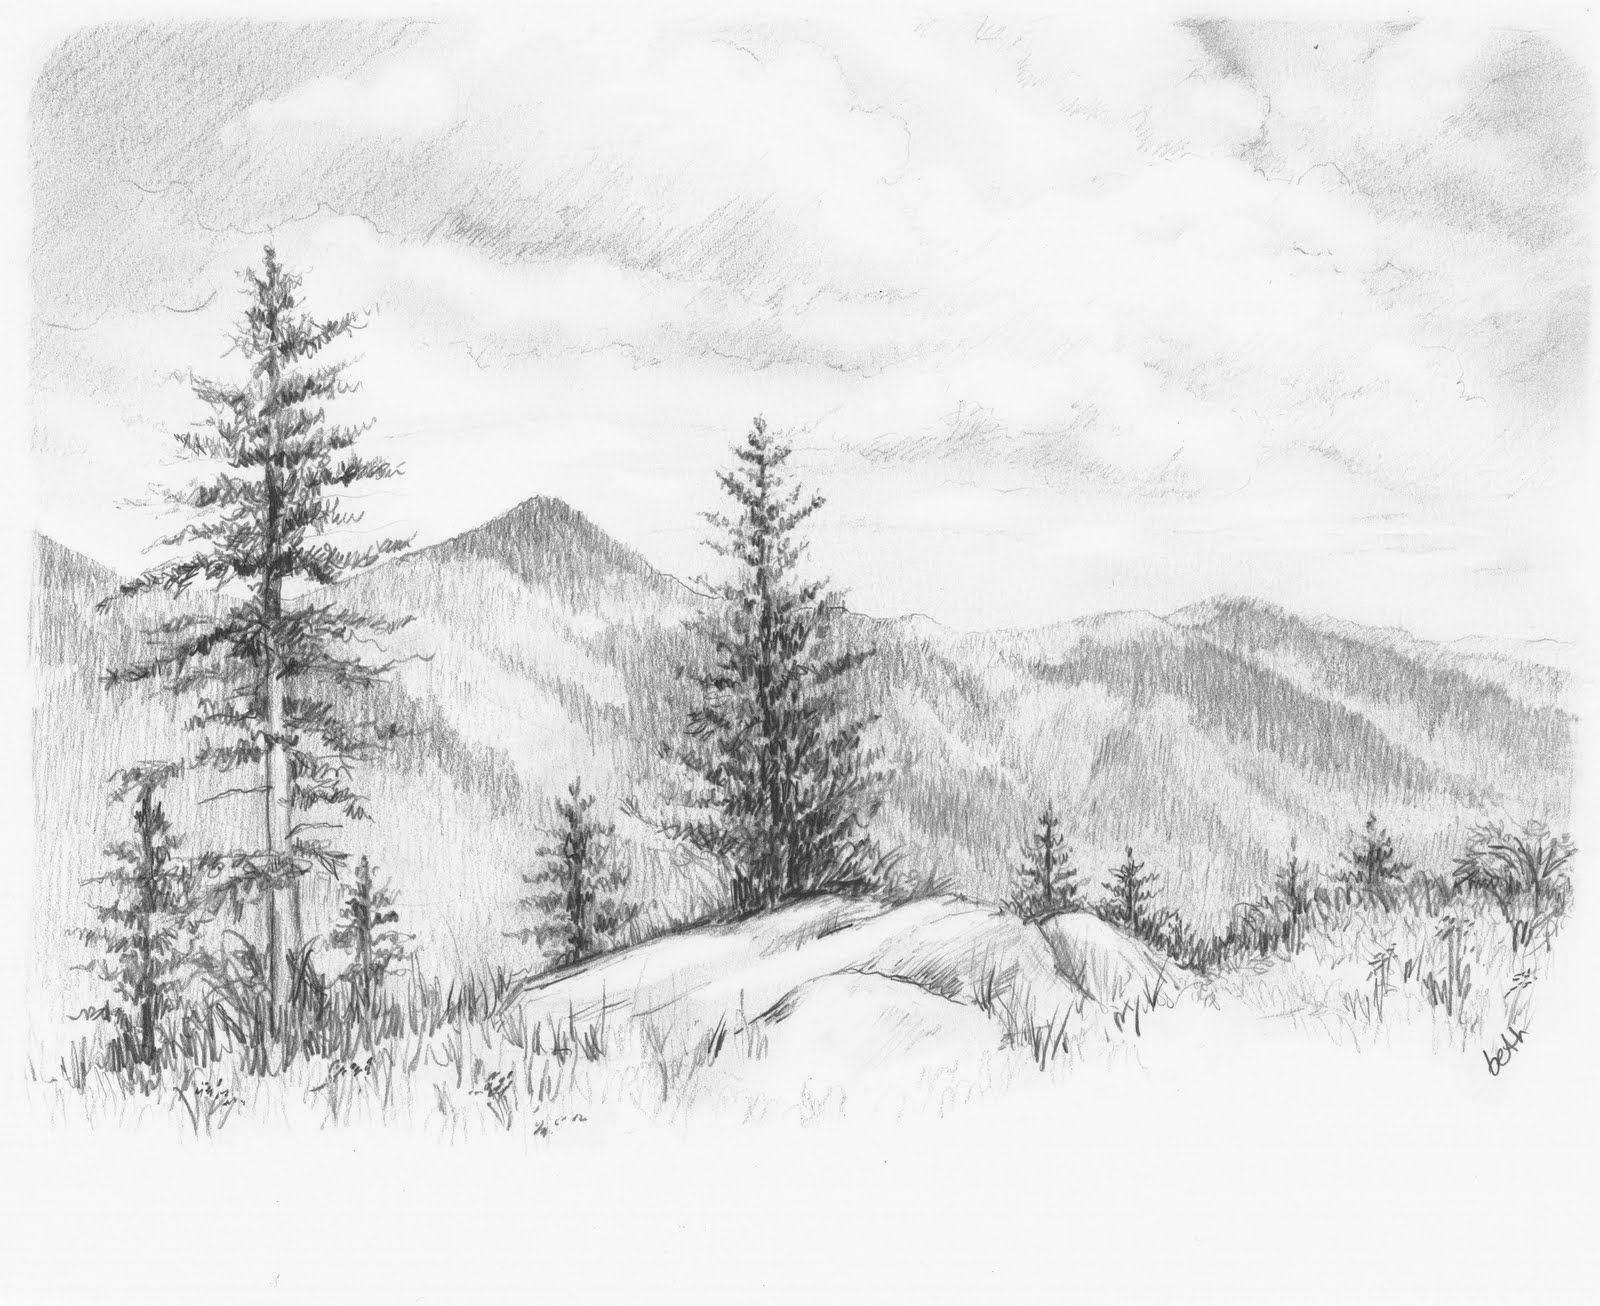 landscape drawings in pencil hd pencil drawing pictures of nature